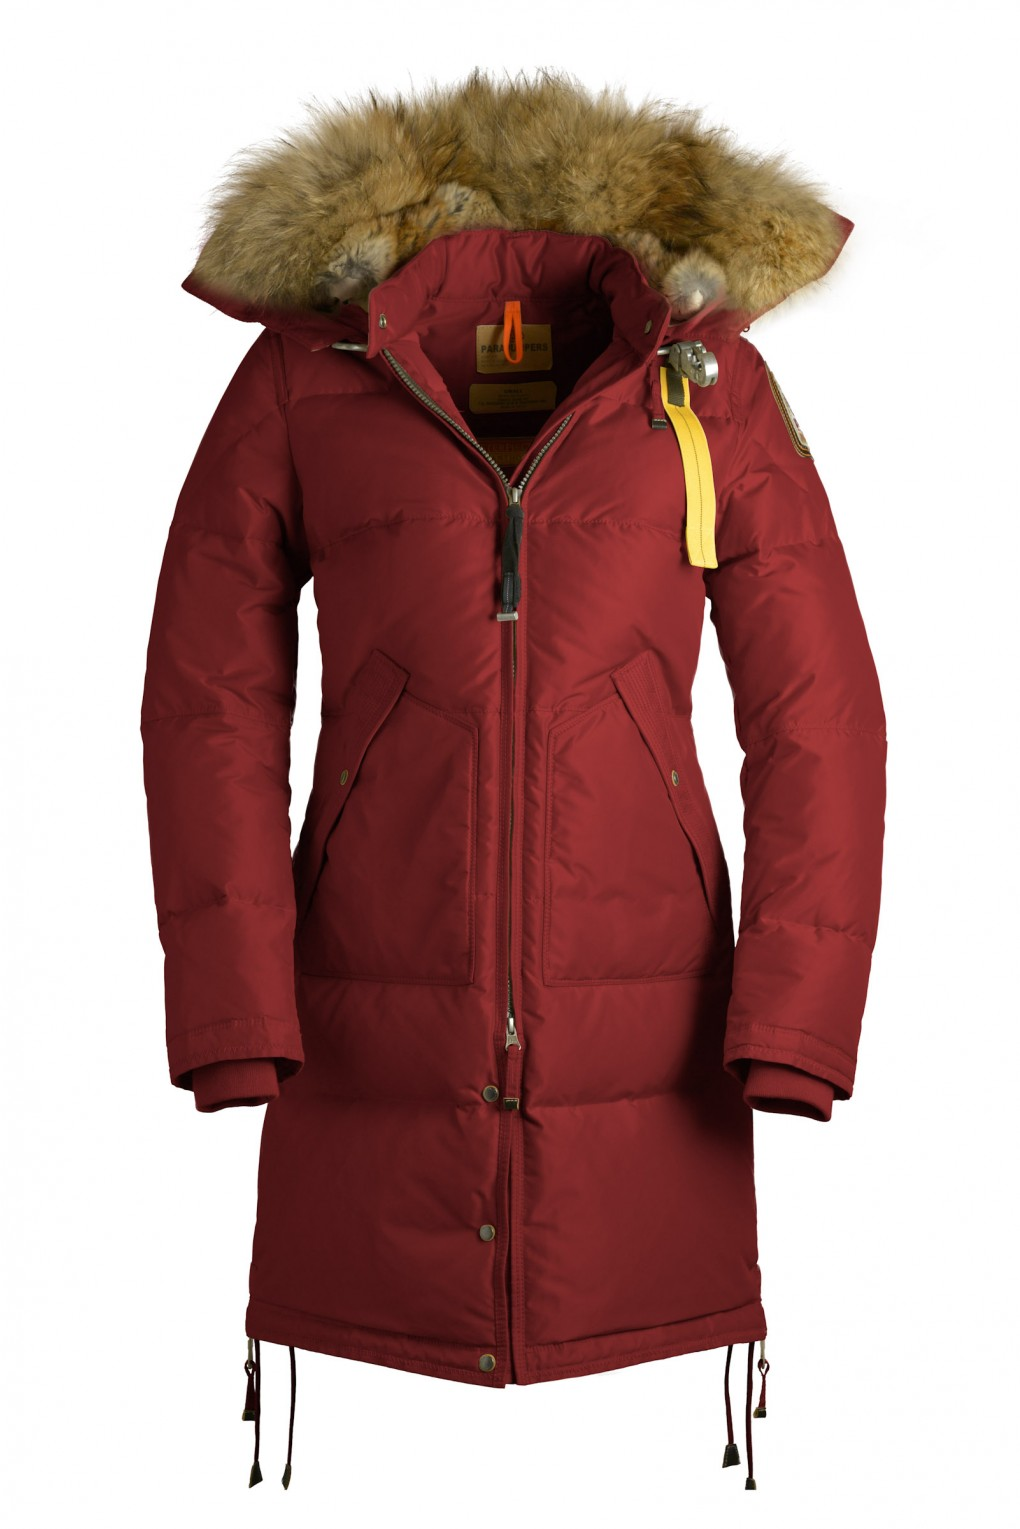 parajumpers LONG BEAR woman outerwear Red